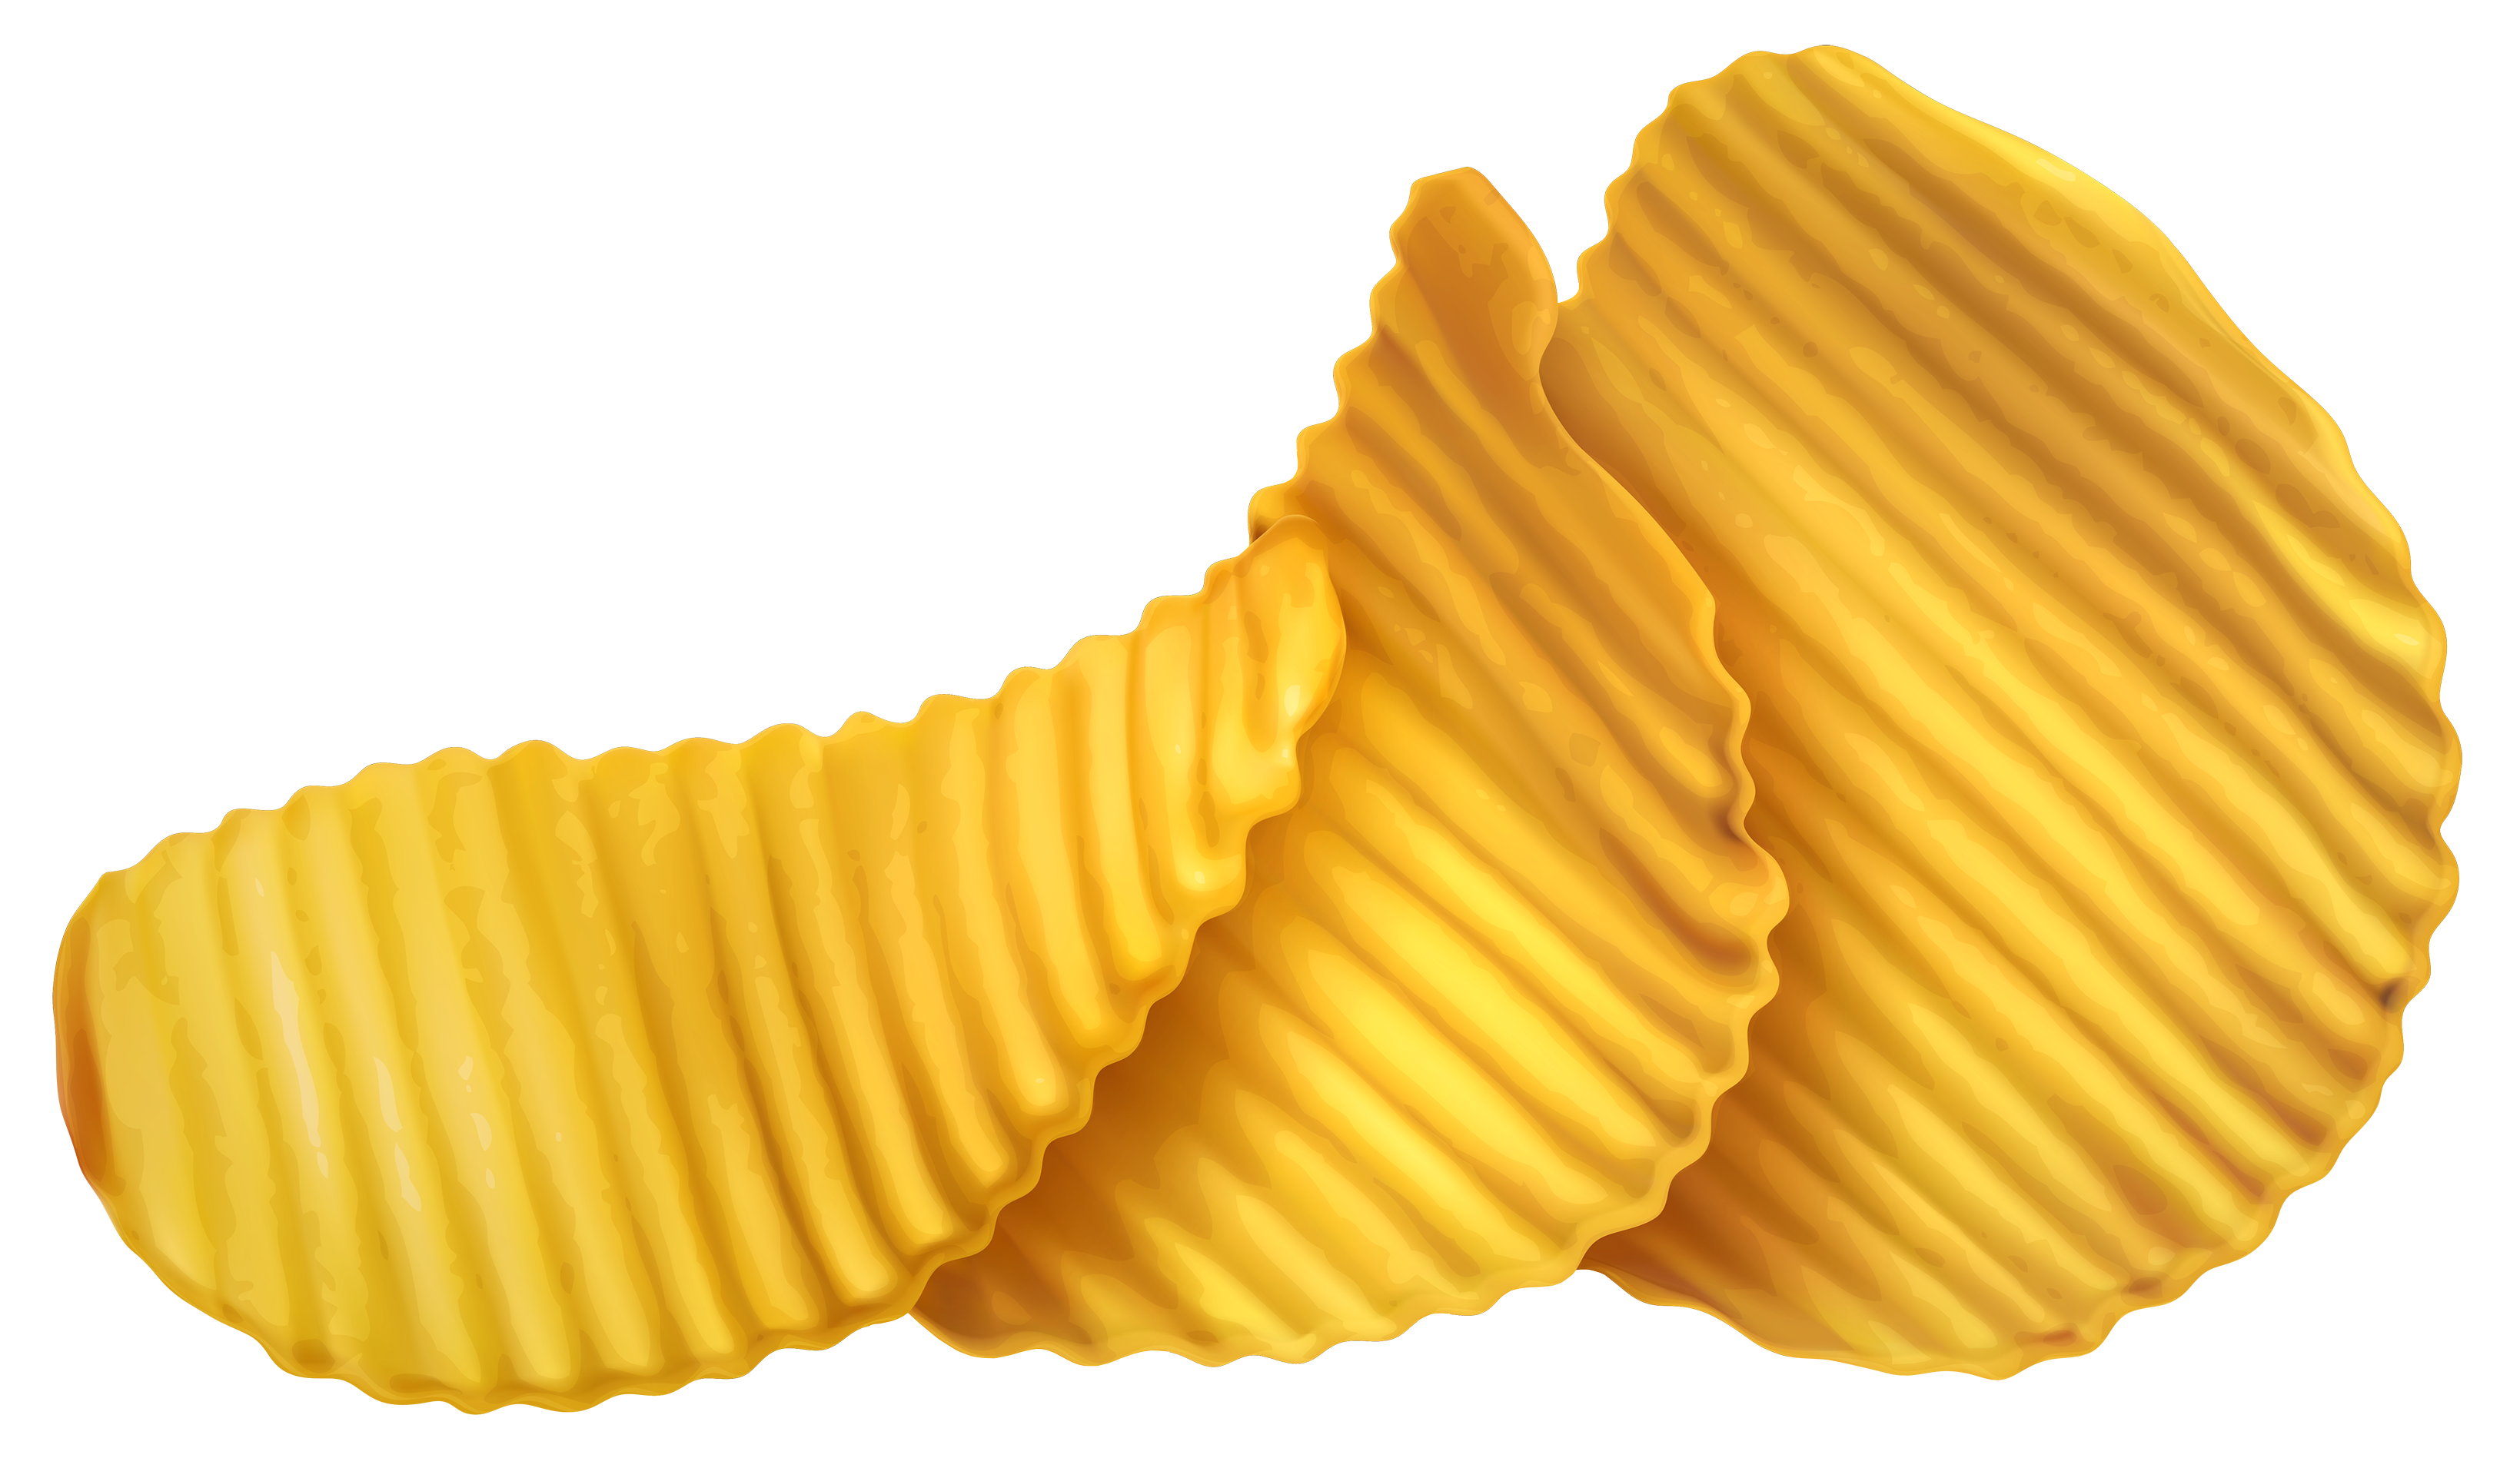 Potato Chips PNG Vector Clipart.